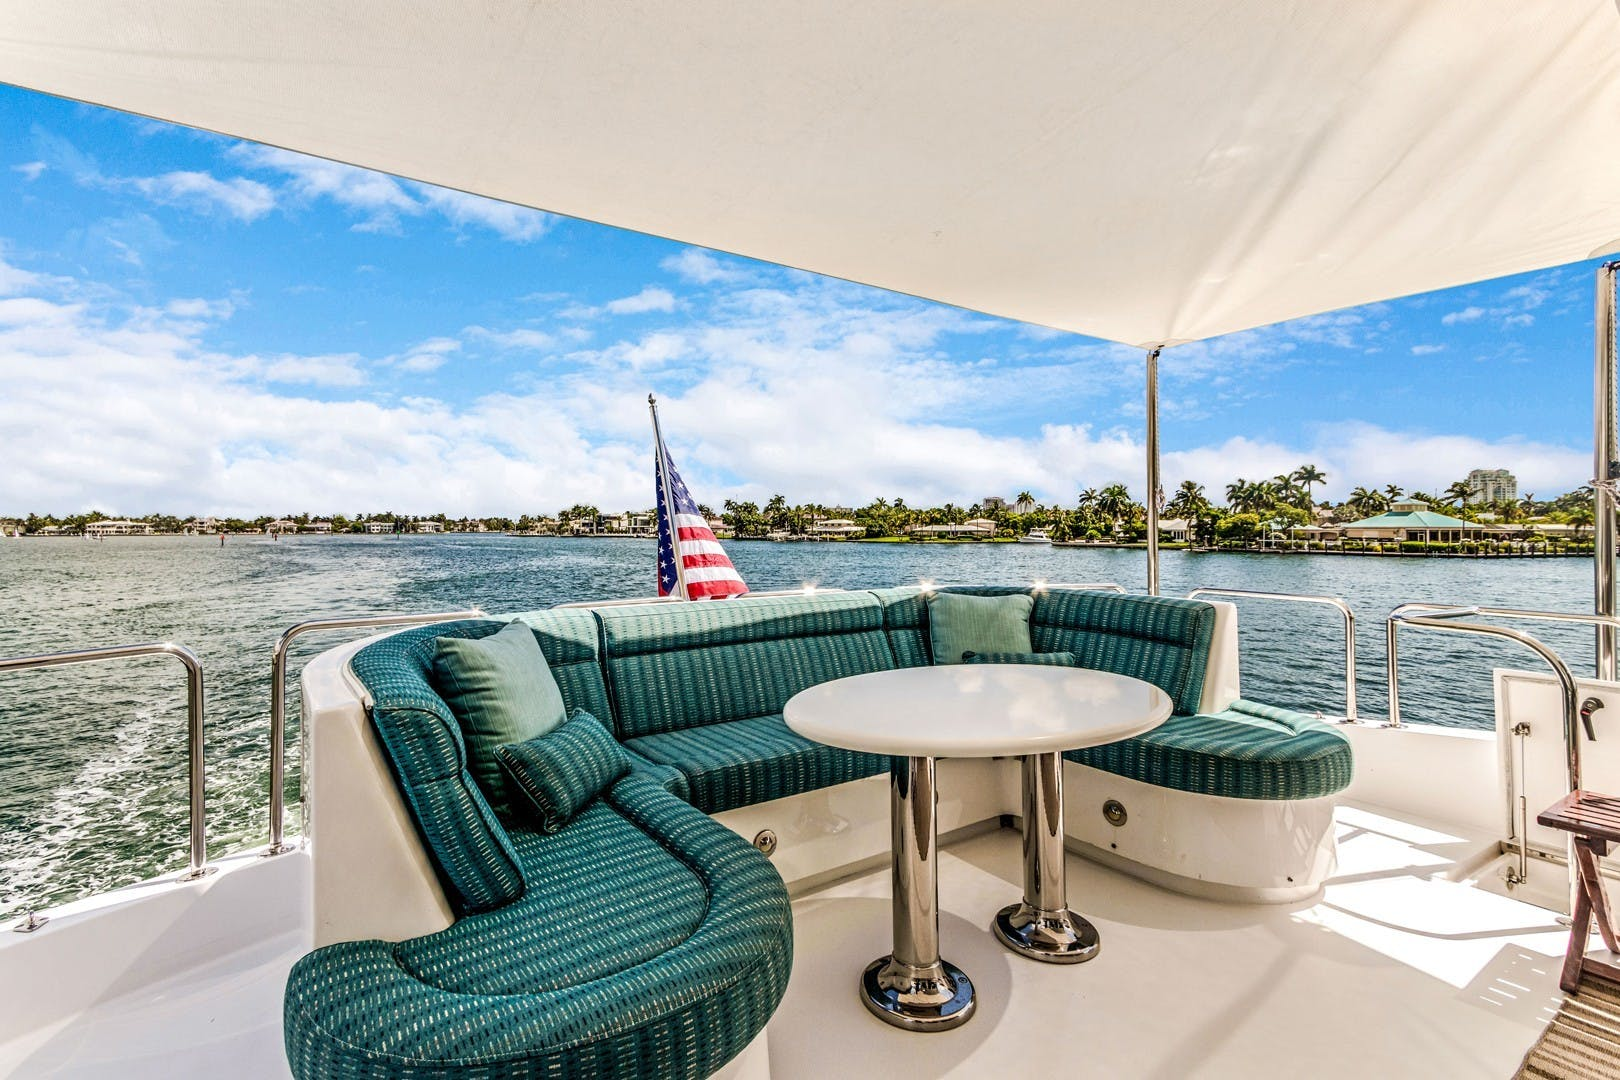 2012 Hatteras 80' Enclosed Bridge Motor Yacht OBSESSION   Picture 5 of 76